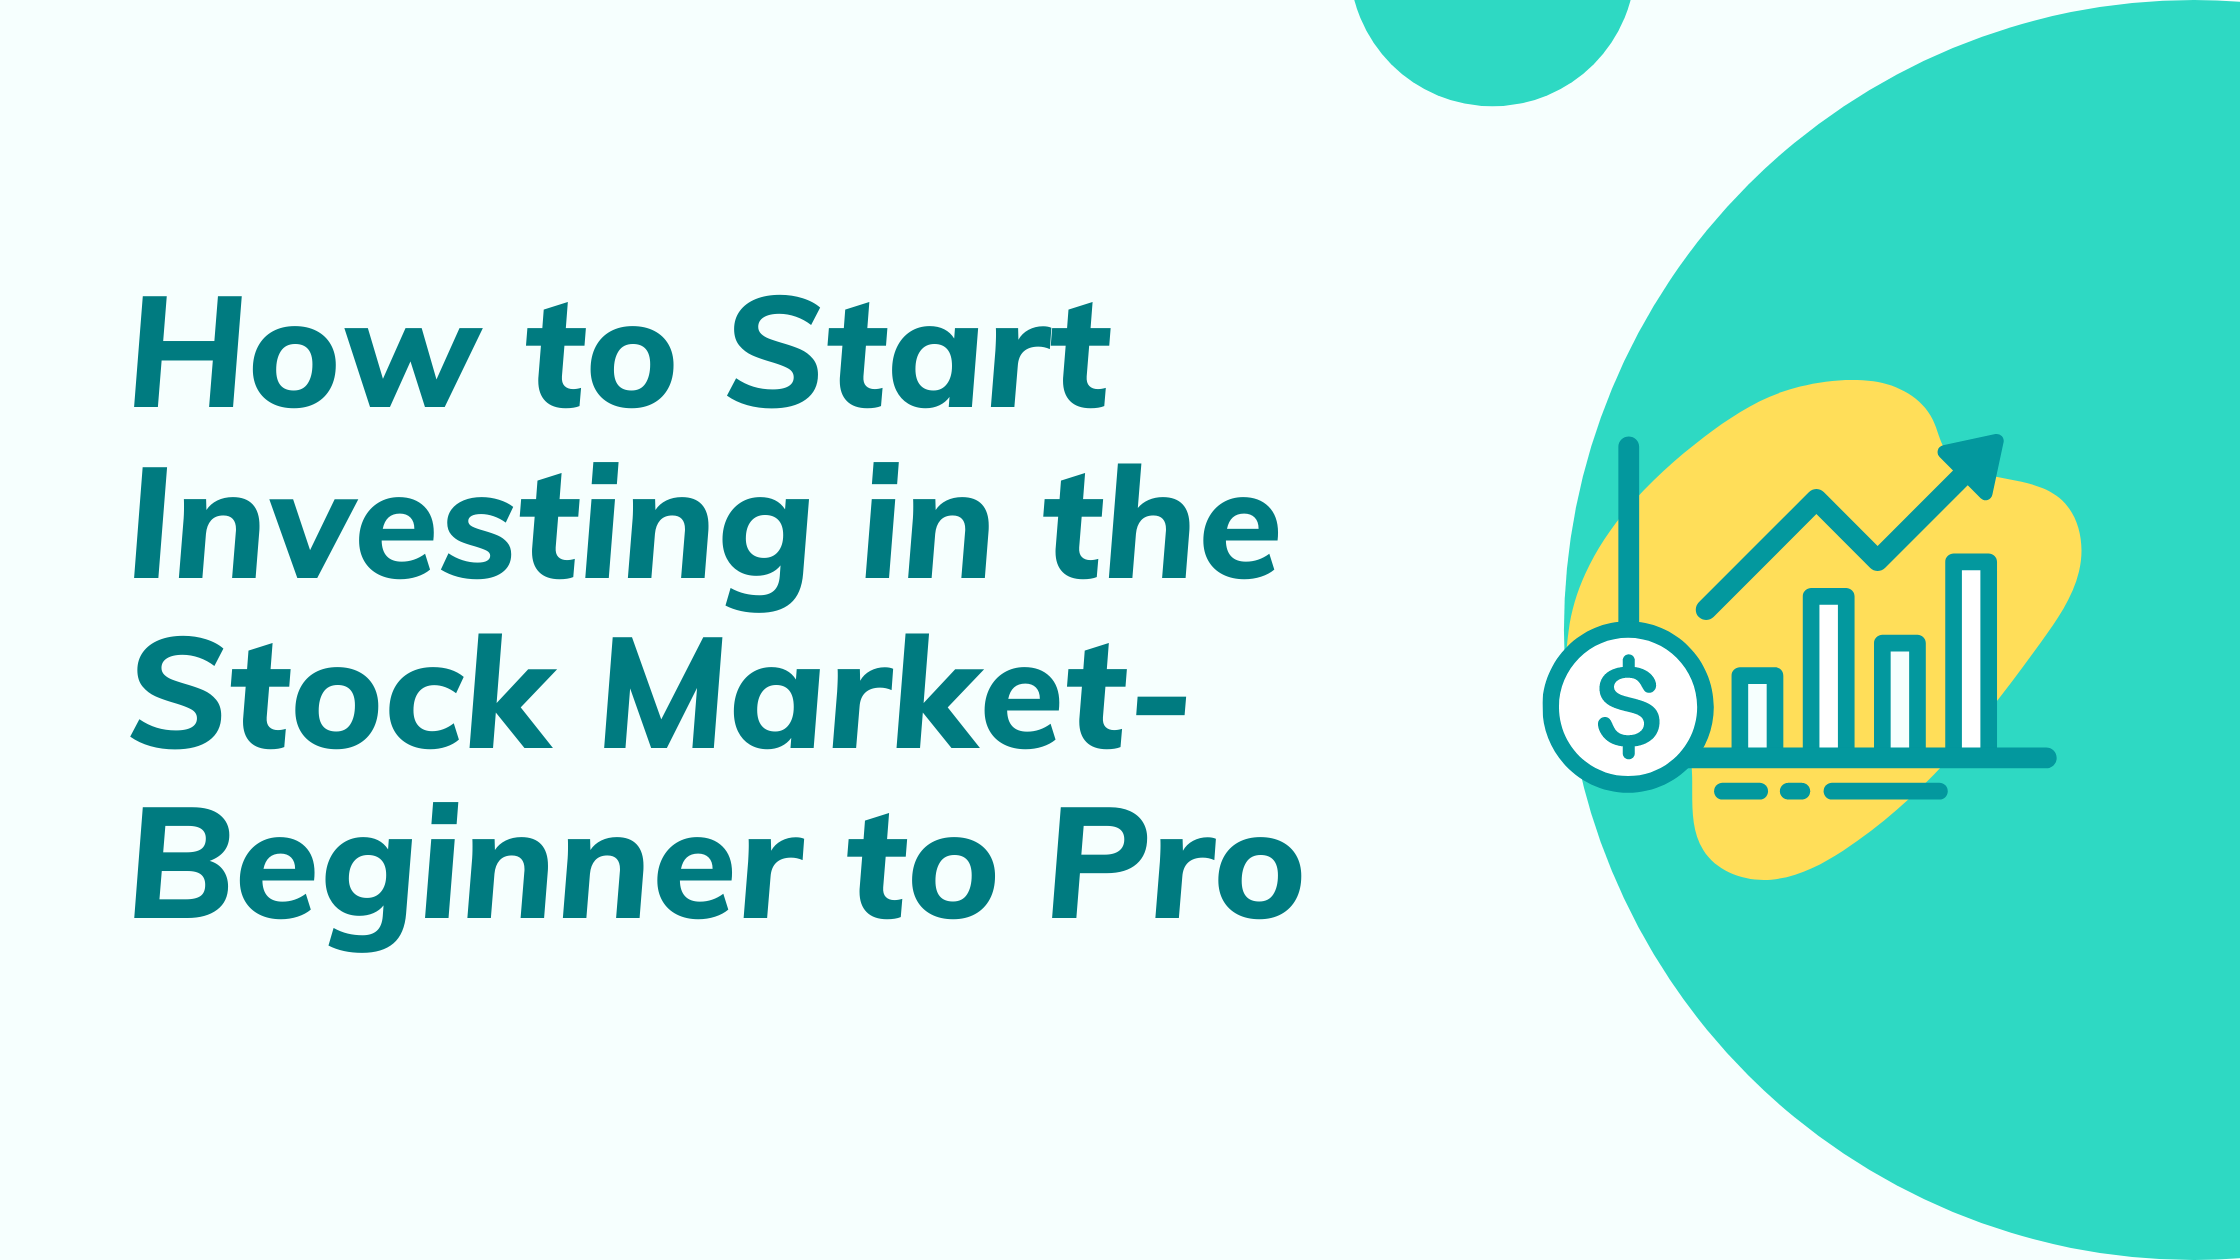 How To Start Investing In The Stock Market- Beginner To Pro